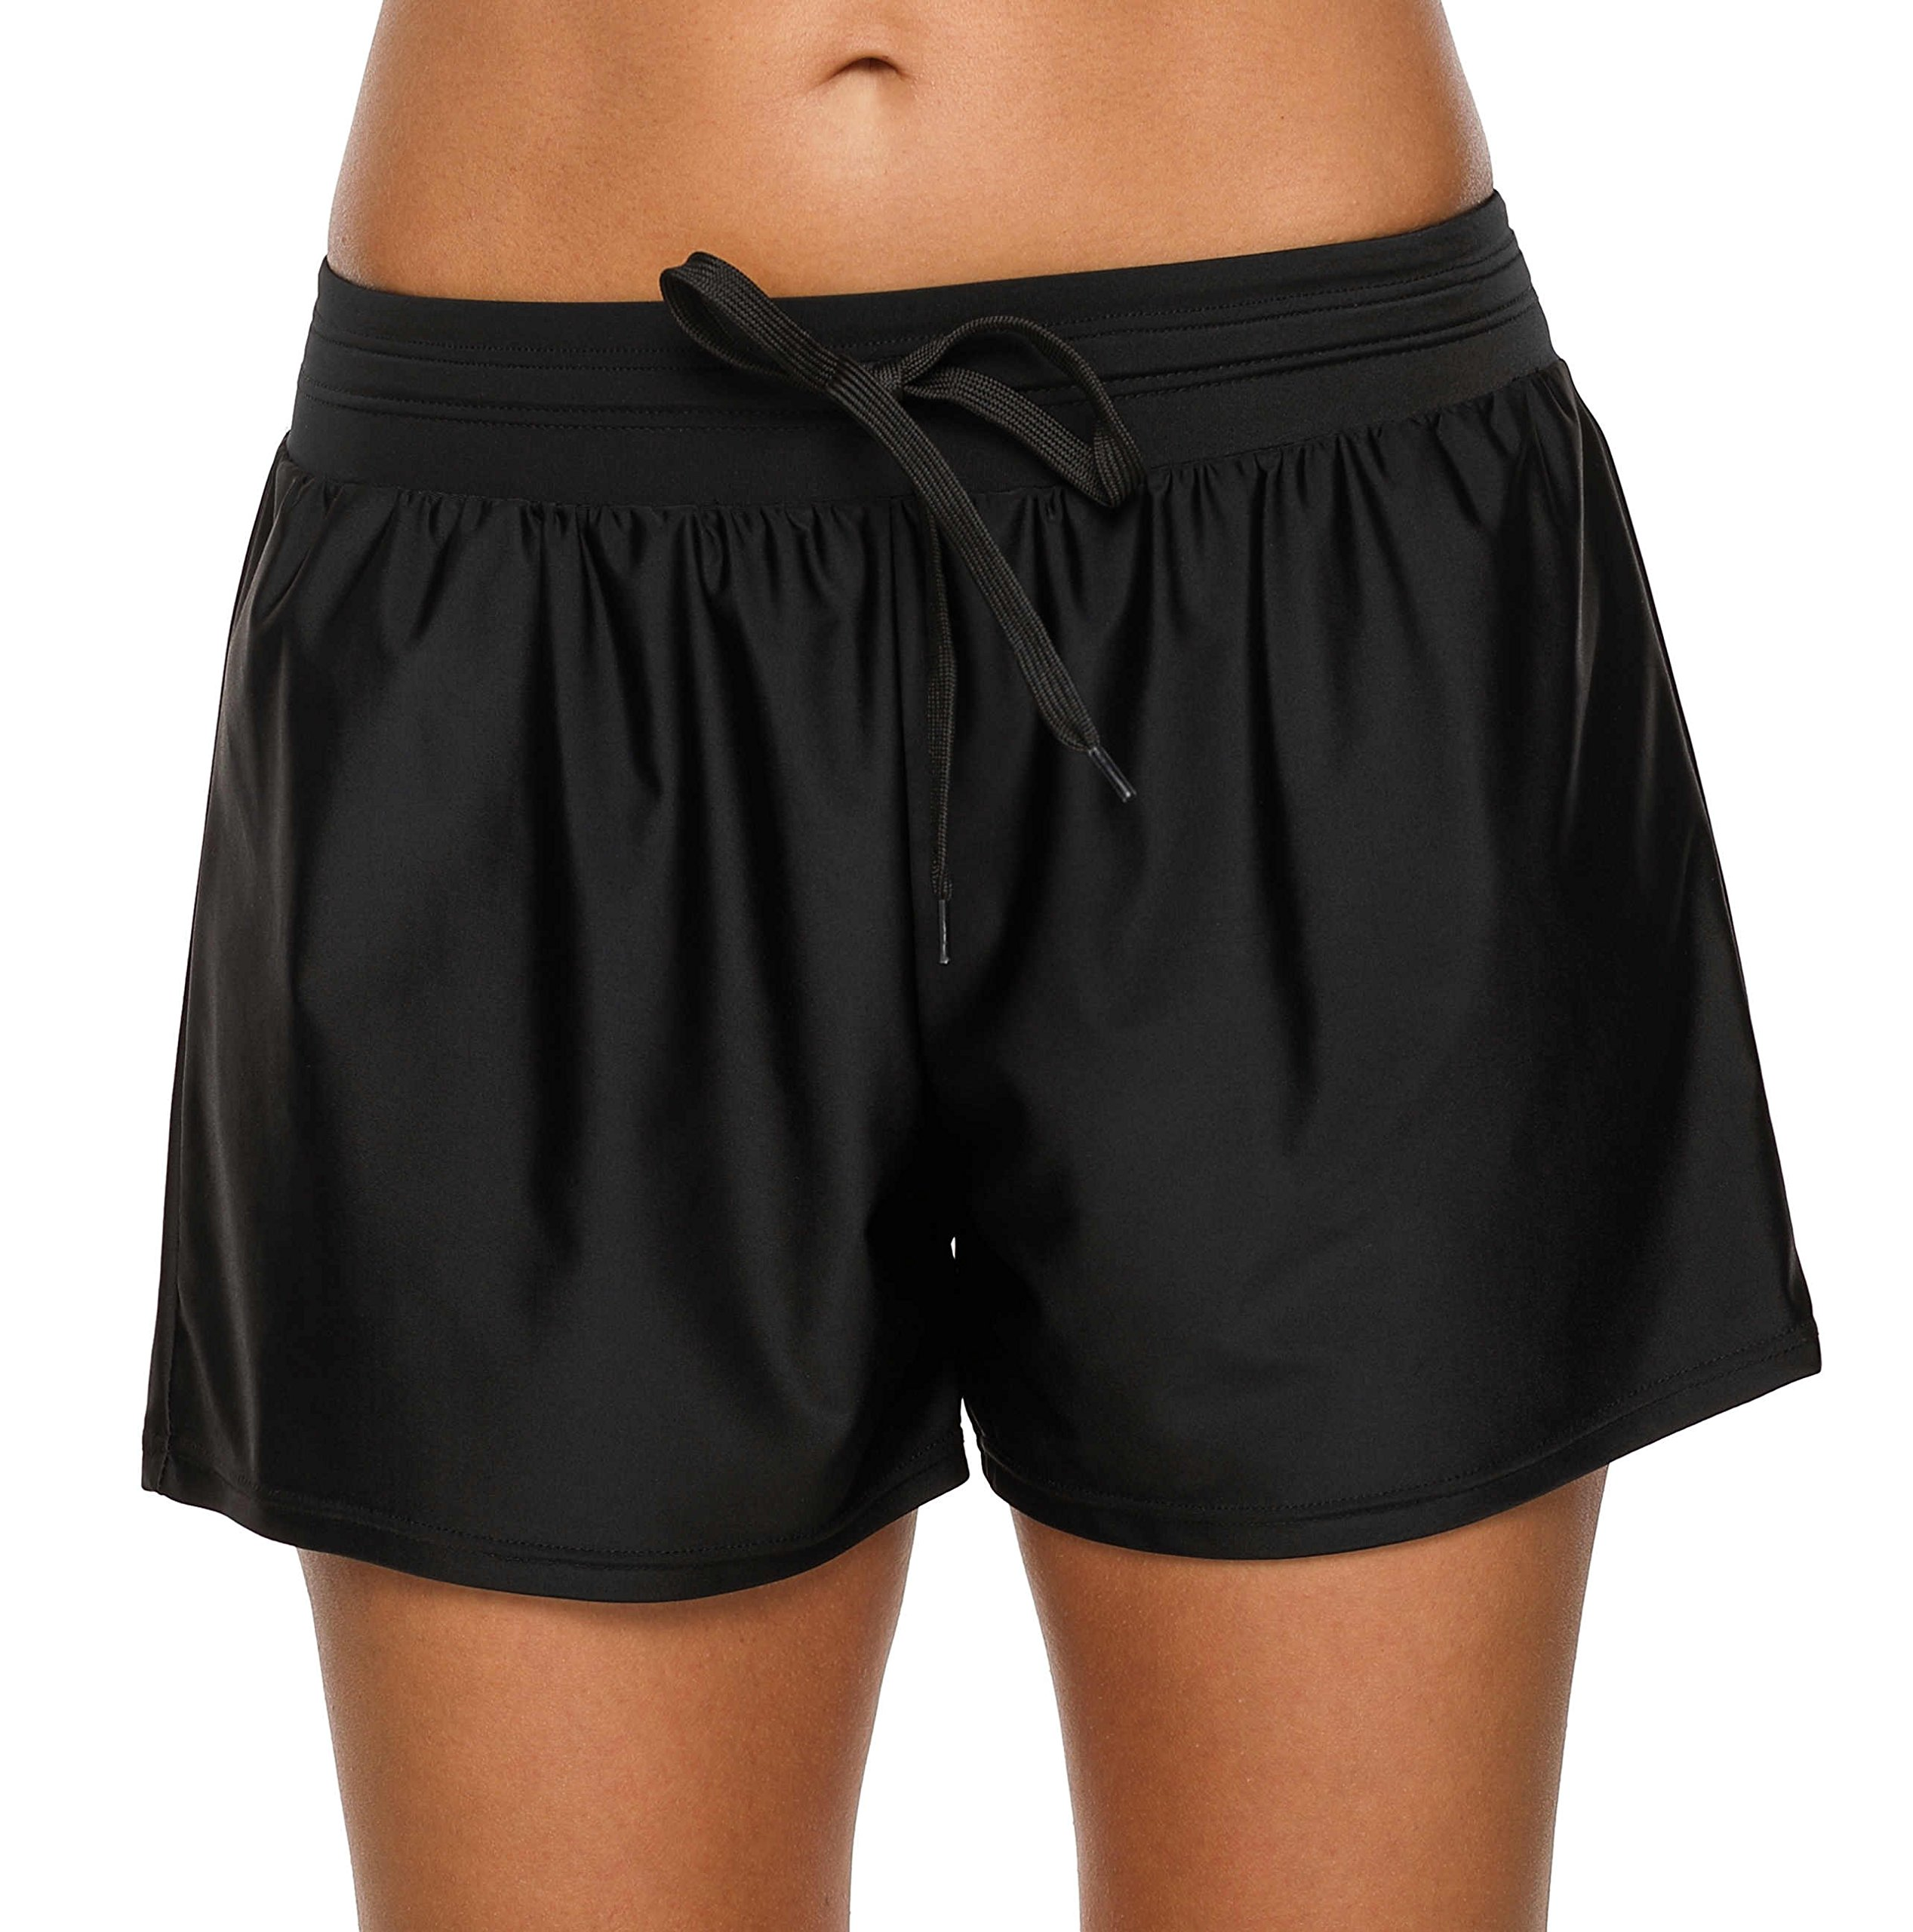 beautyin Womens Swim Bottoms Board Shorts Swimsuit Bathing Suit Shorts Black 2XL